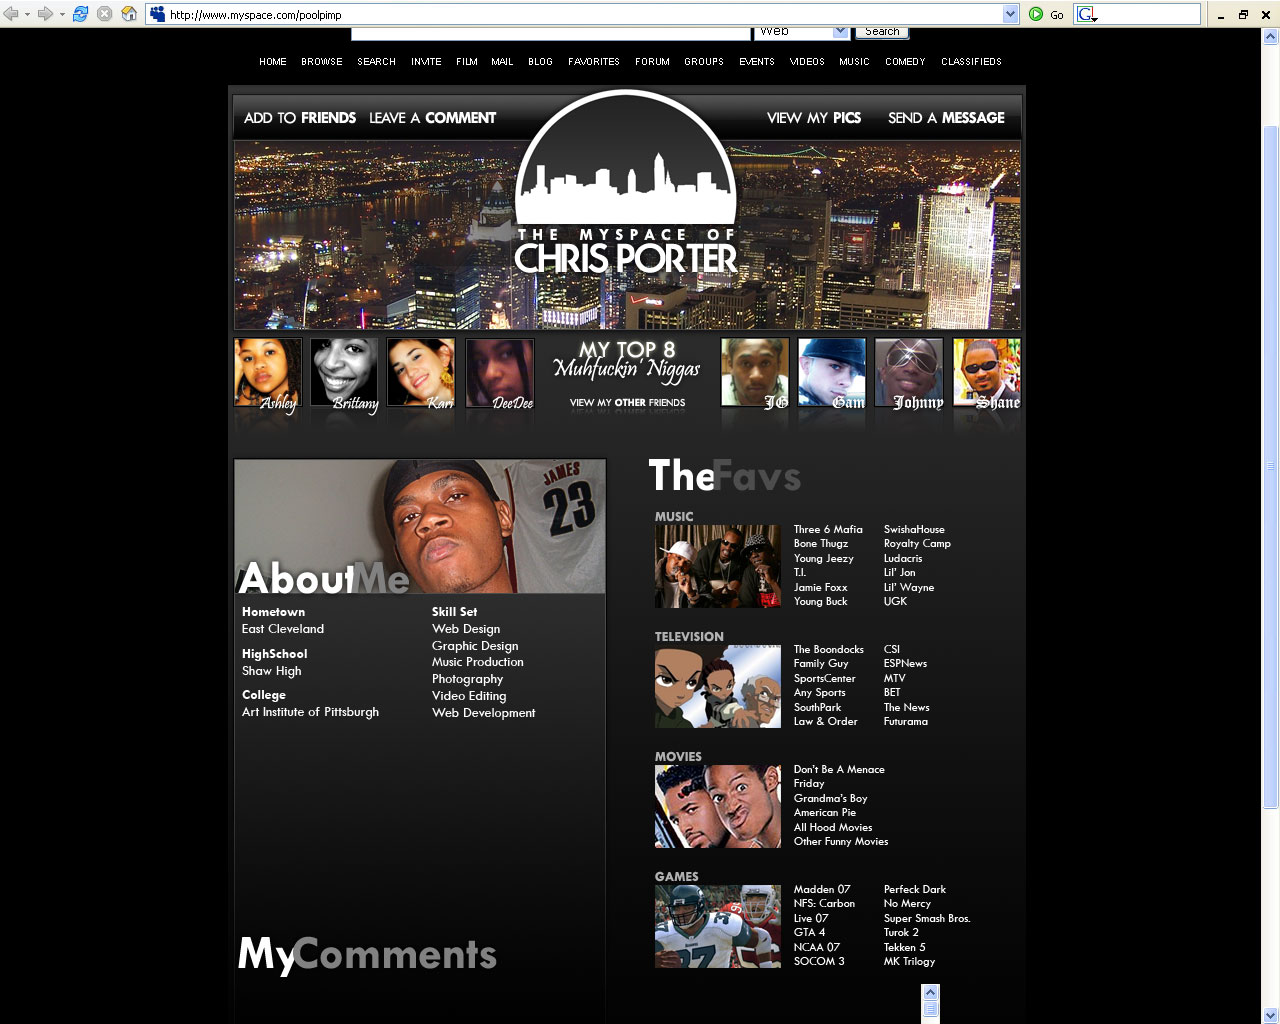 Photos | See all your images - Myspace